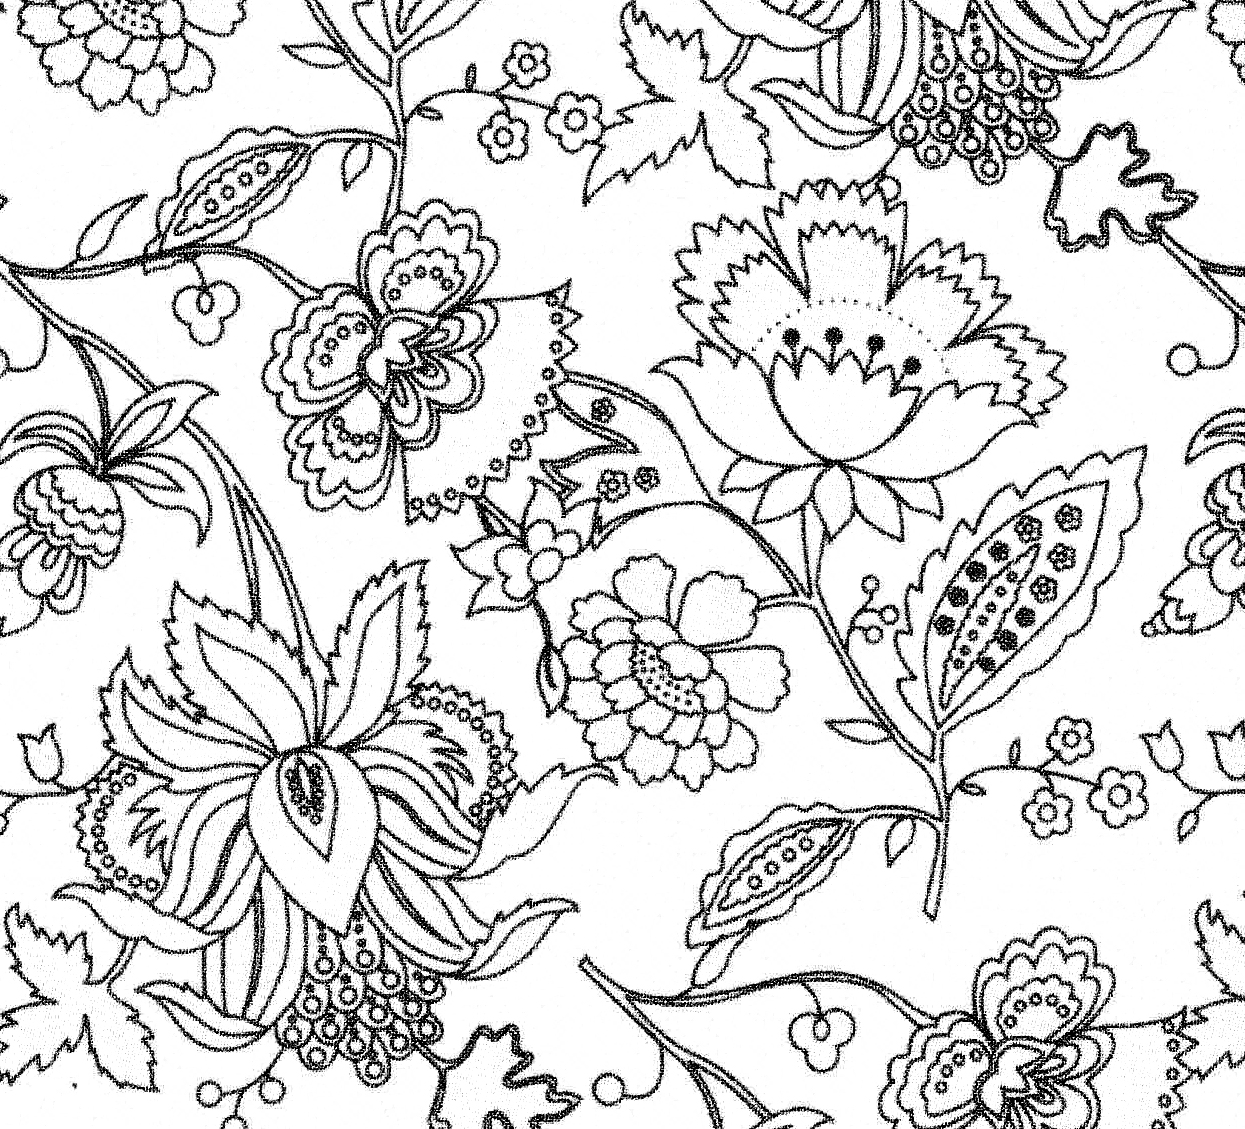 Line Art Flowers Husqvarna : Floral drawings cliparts